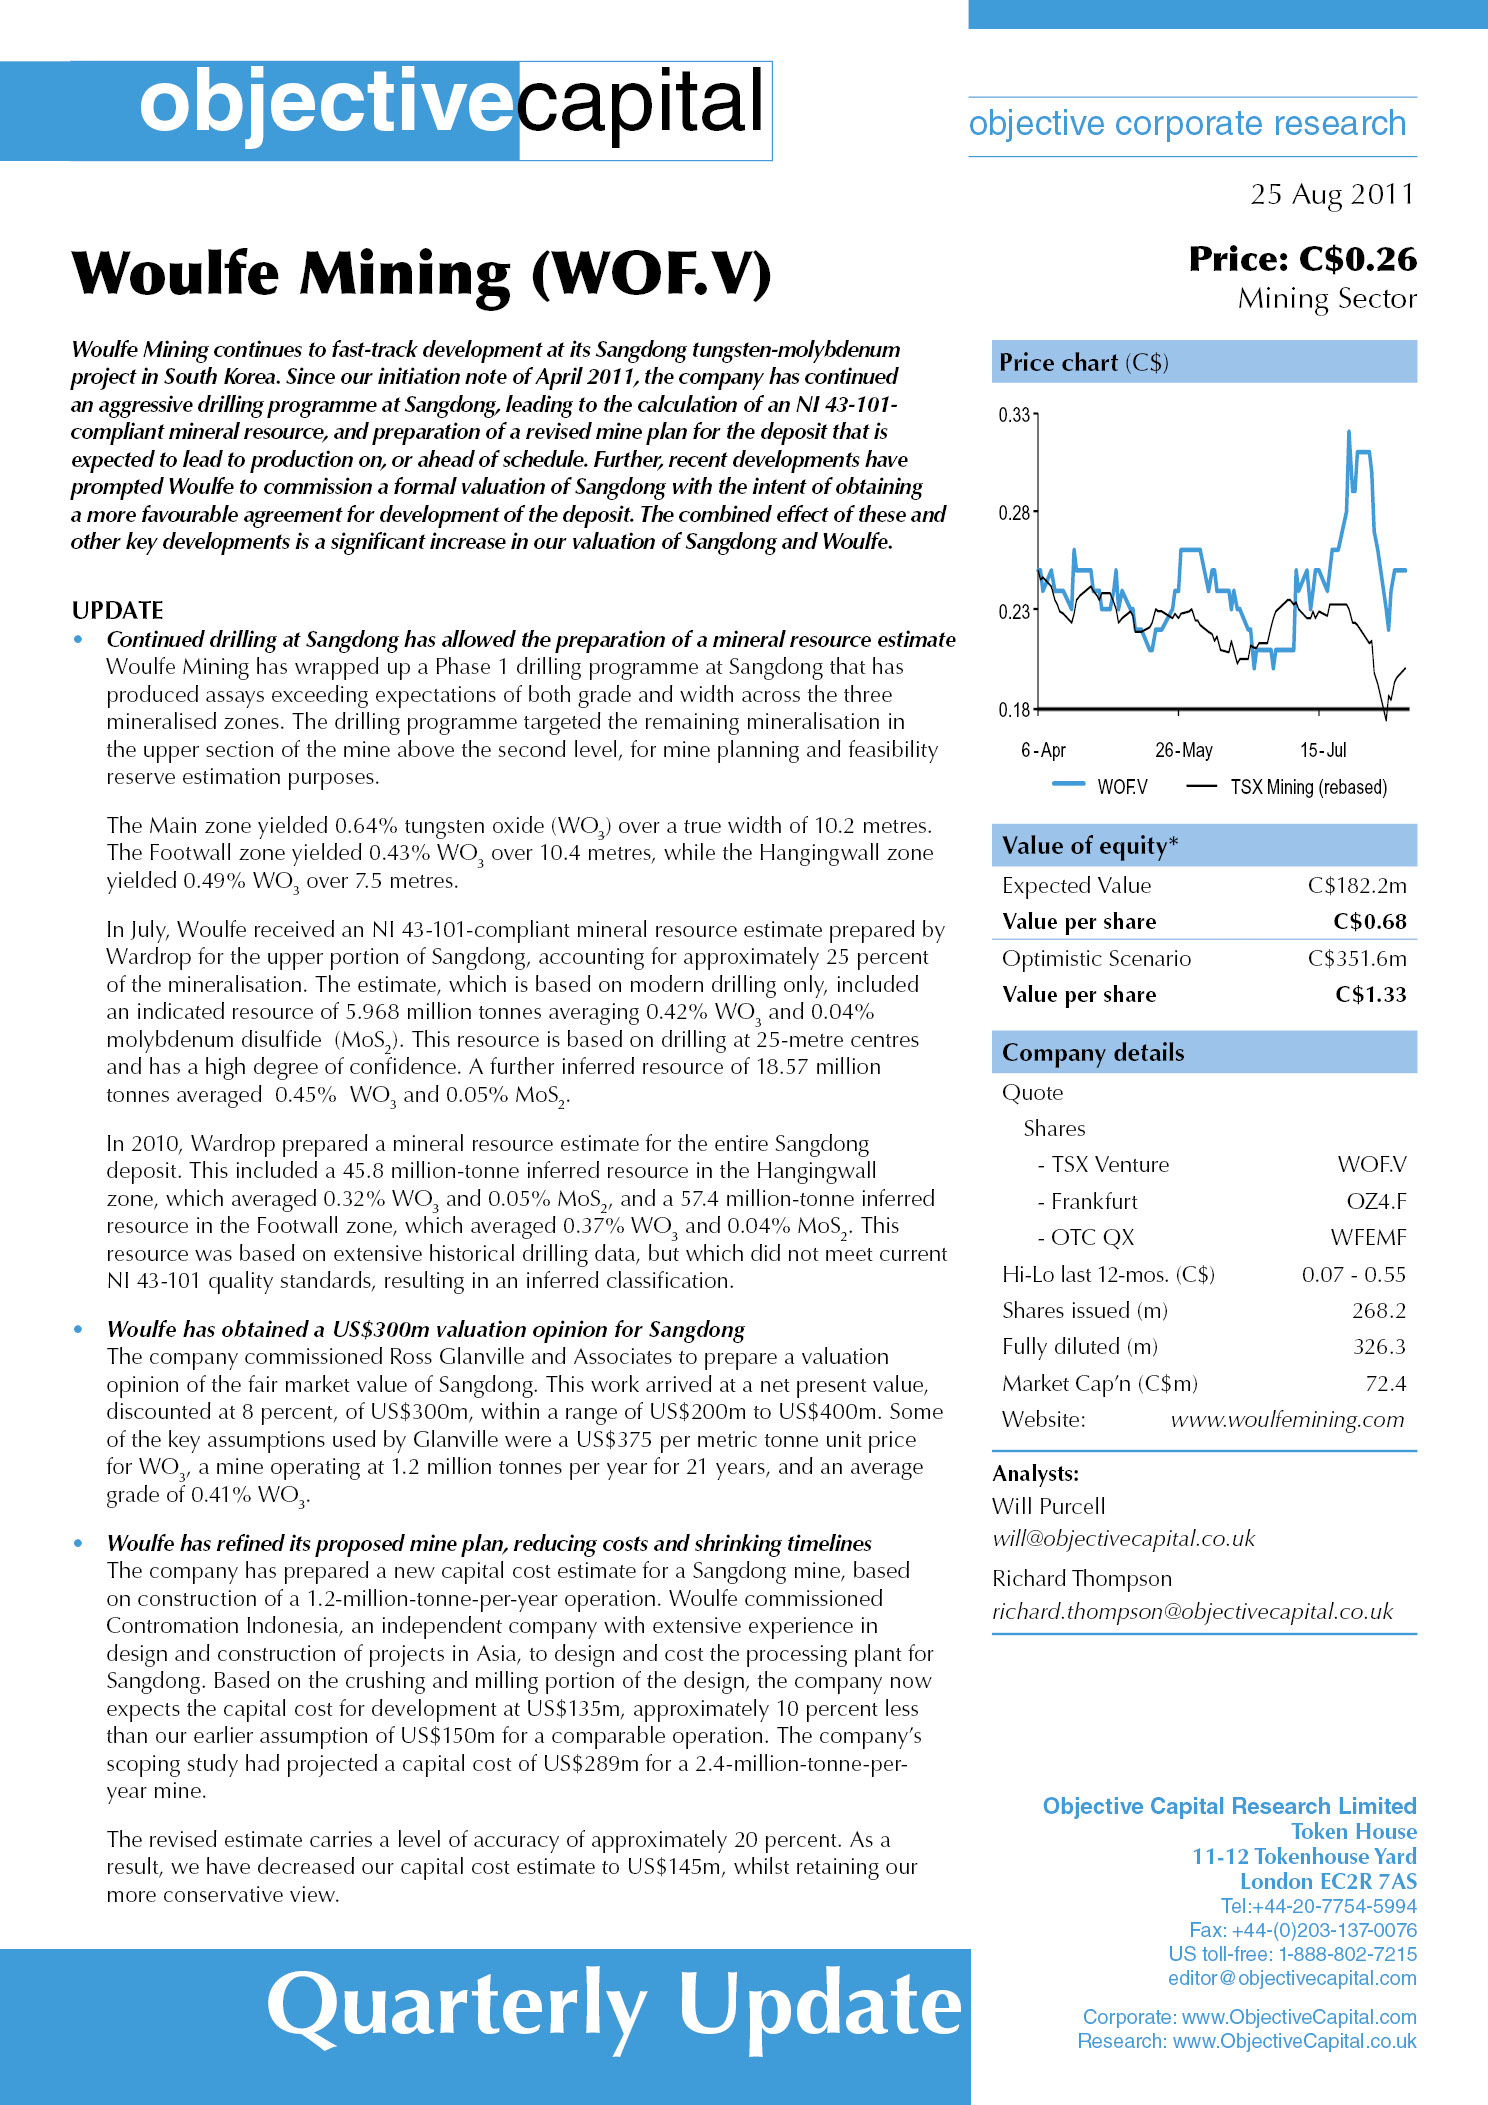 Read report on Bacanora Minerals (BCN.V) - company appears ahead of schedule to place El Cajon into production